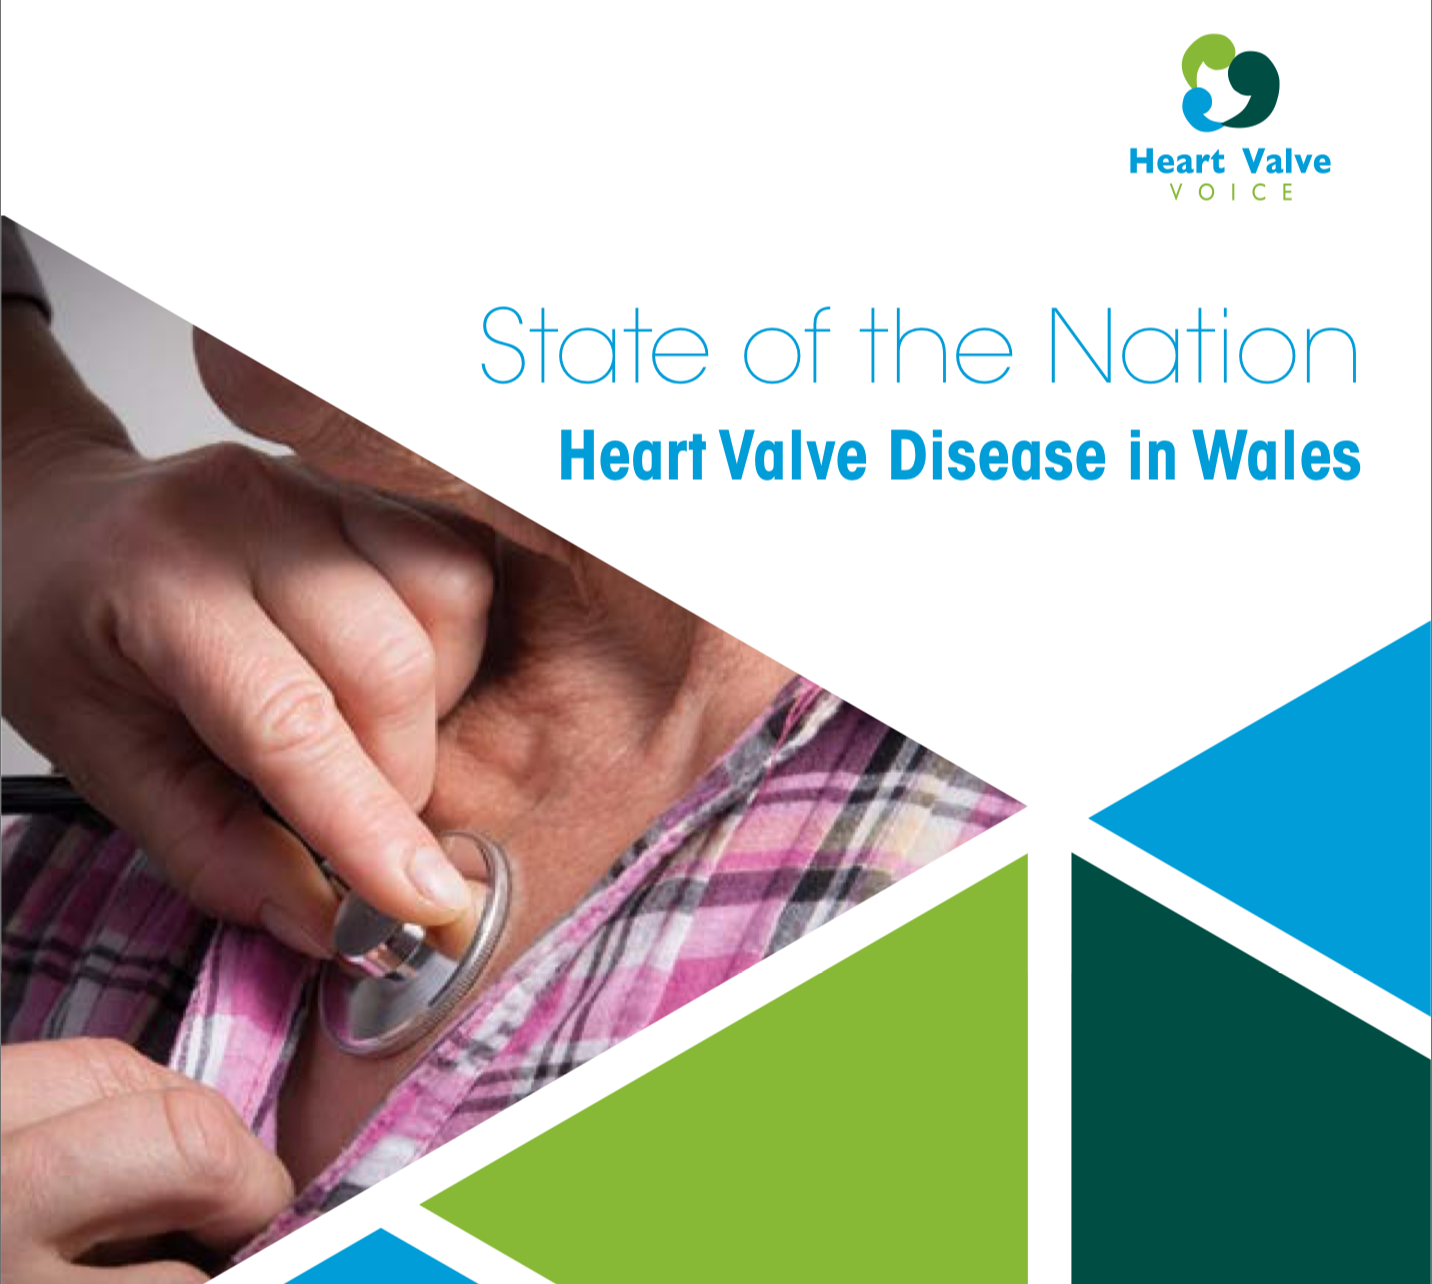 State of a Nation: Heart Valve Disease in Wales